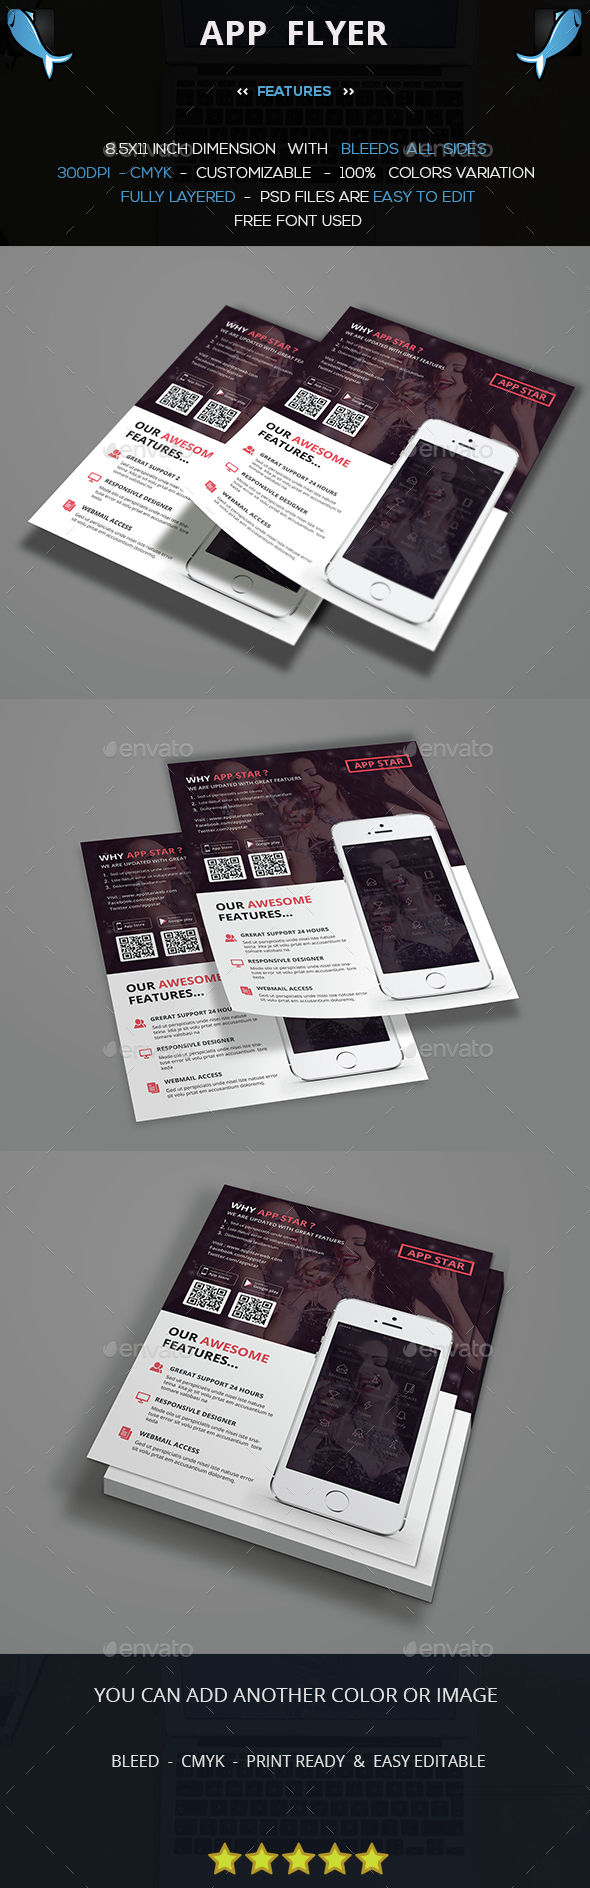 Mobile Promotion Flyer - Commerce Flyers